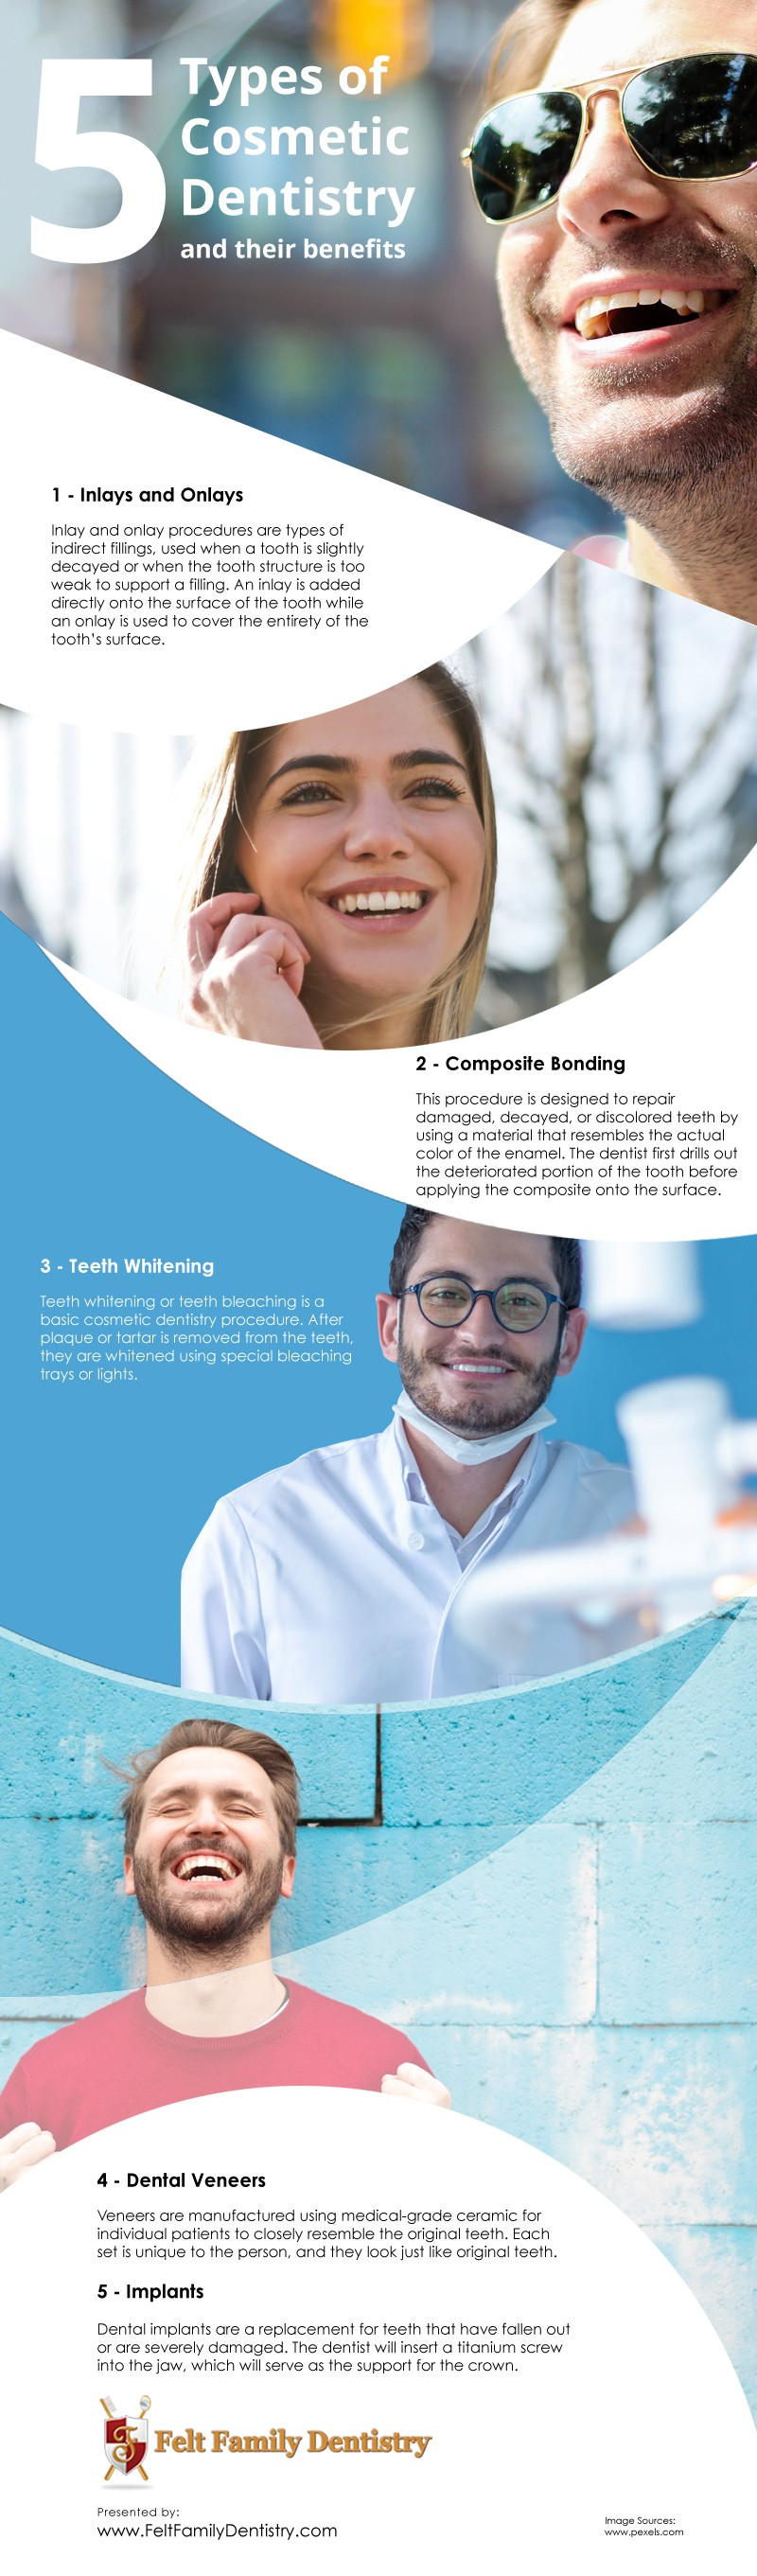 5 Types of Cosmetic Dentistry and their Benefits